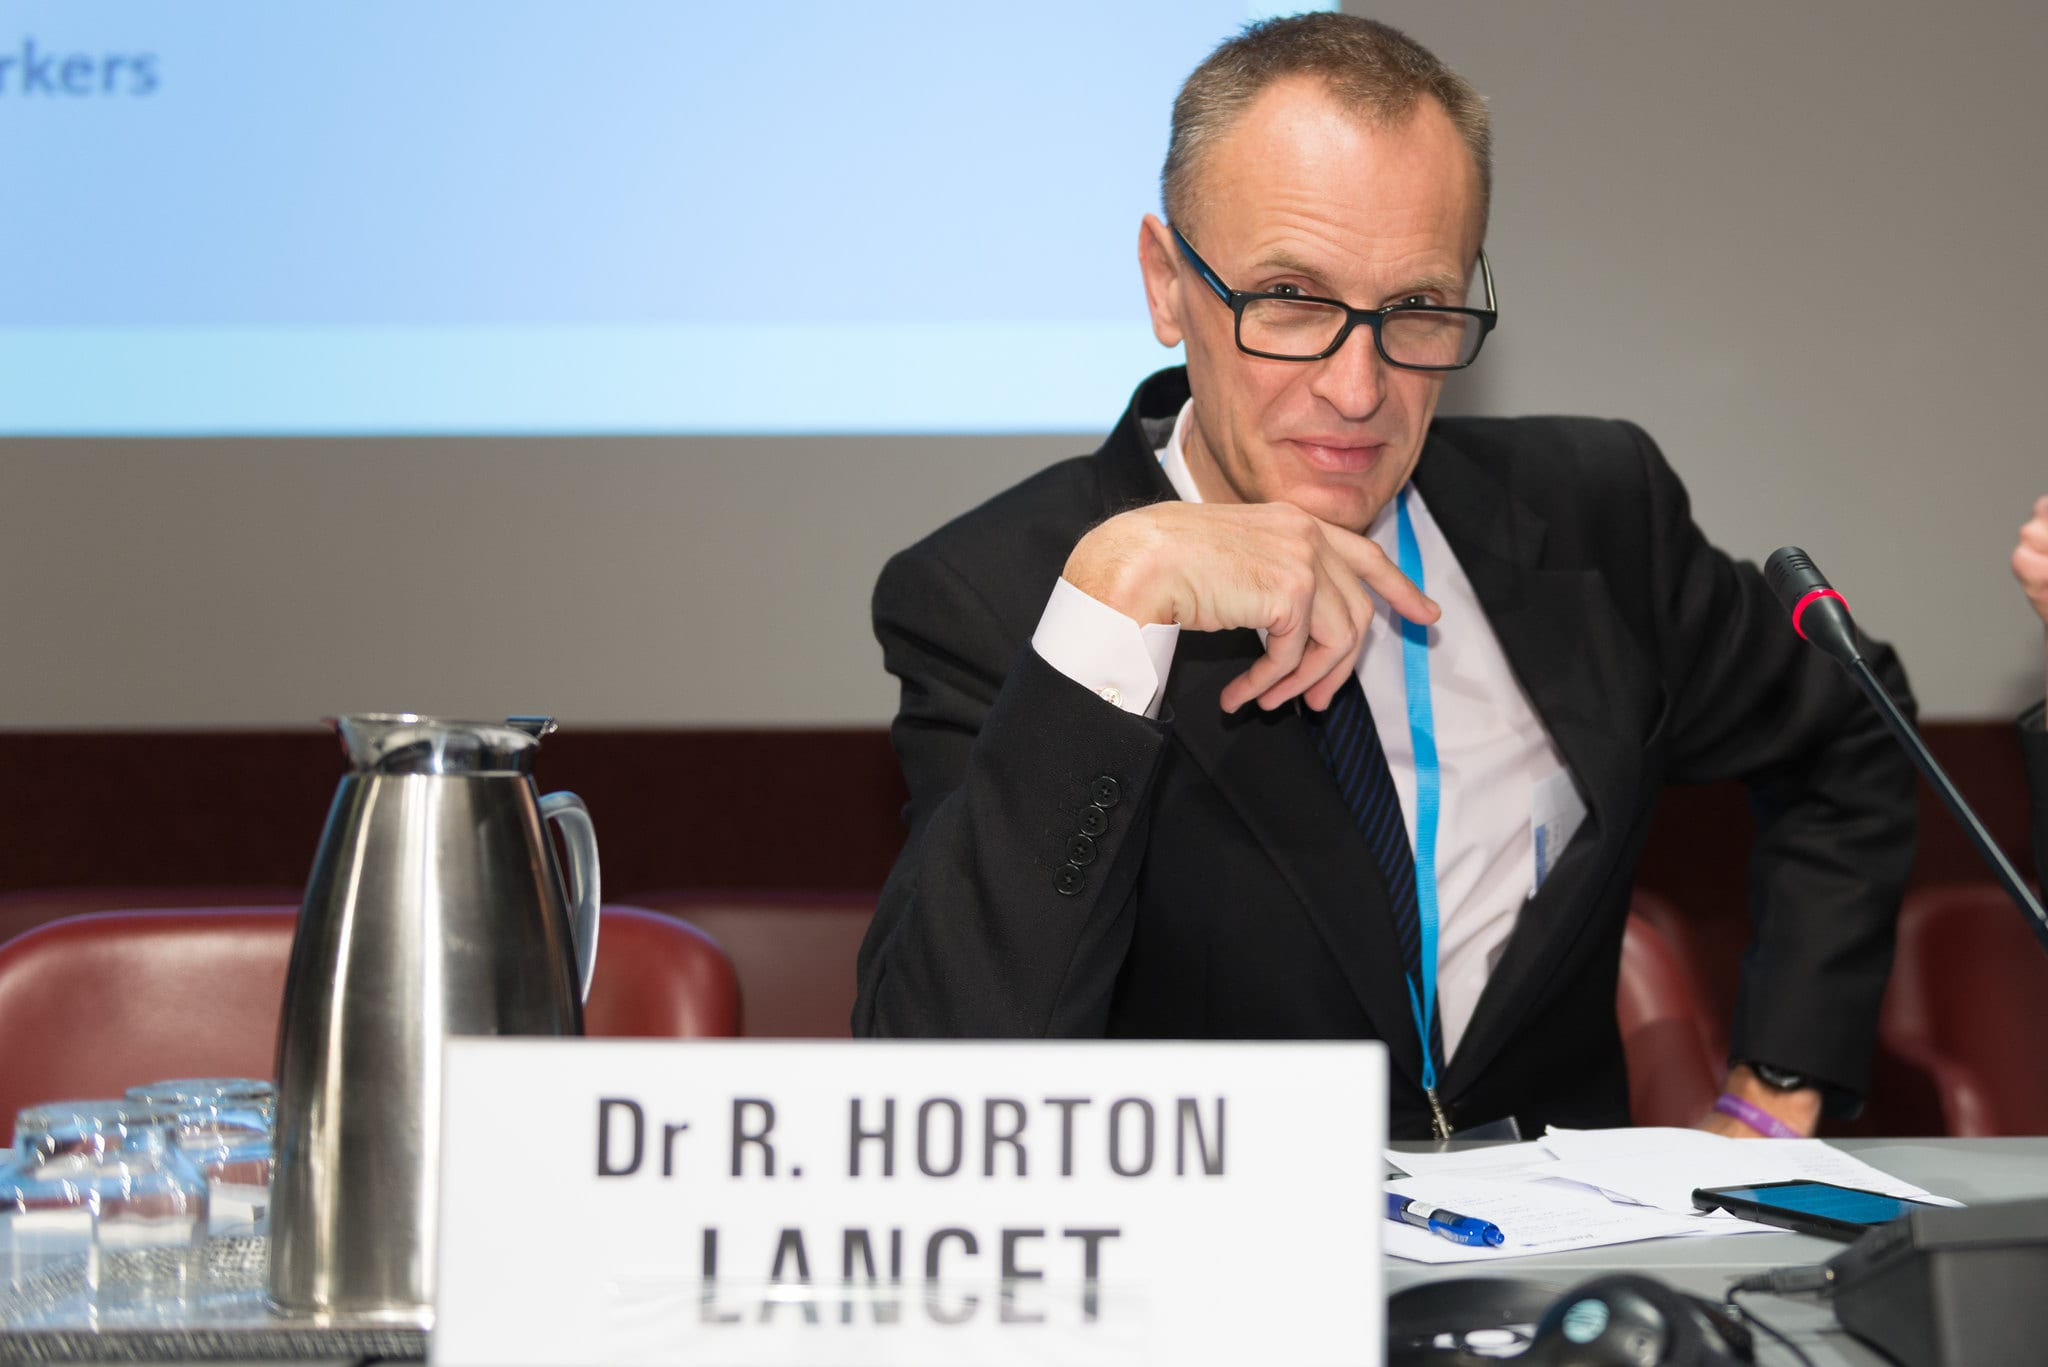 The Lancet editor calls coronavirus 'the biggest' global science policy failure in a generation